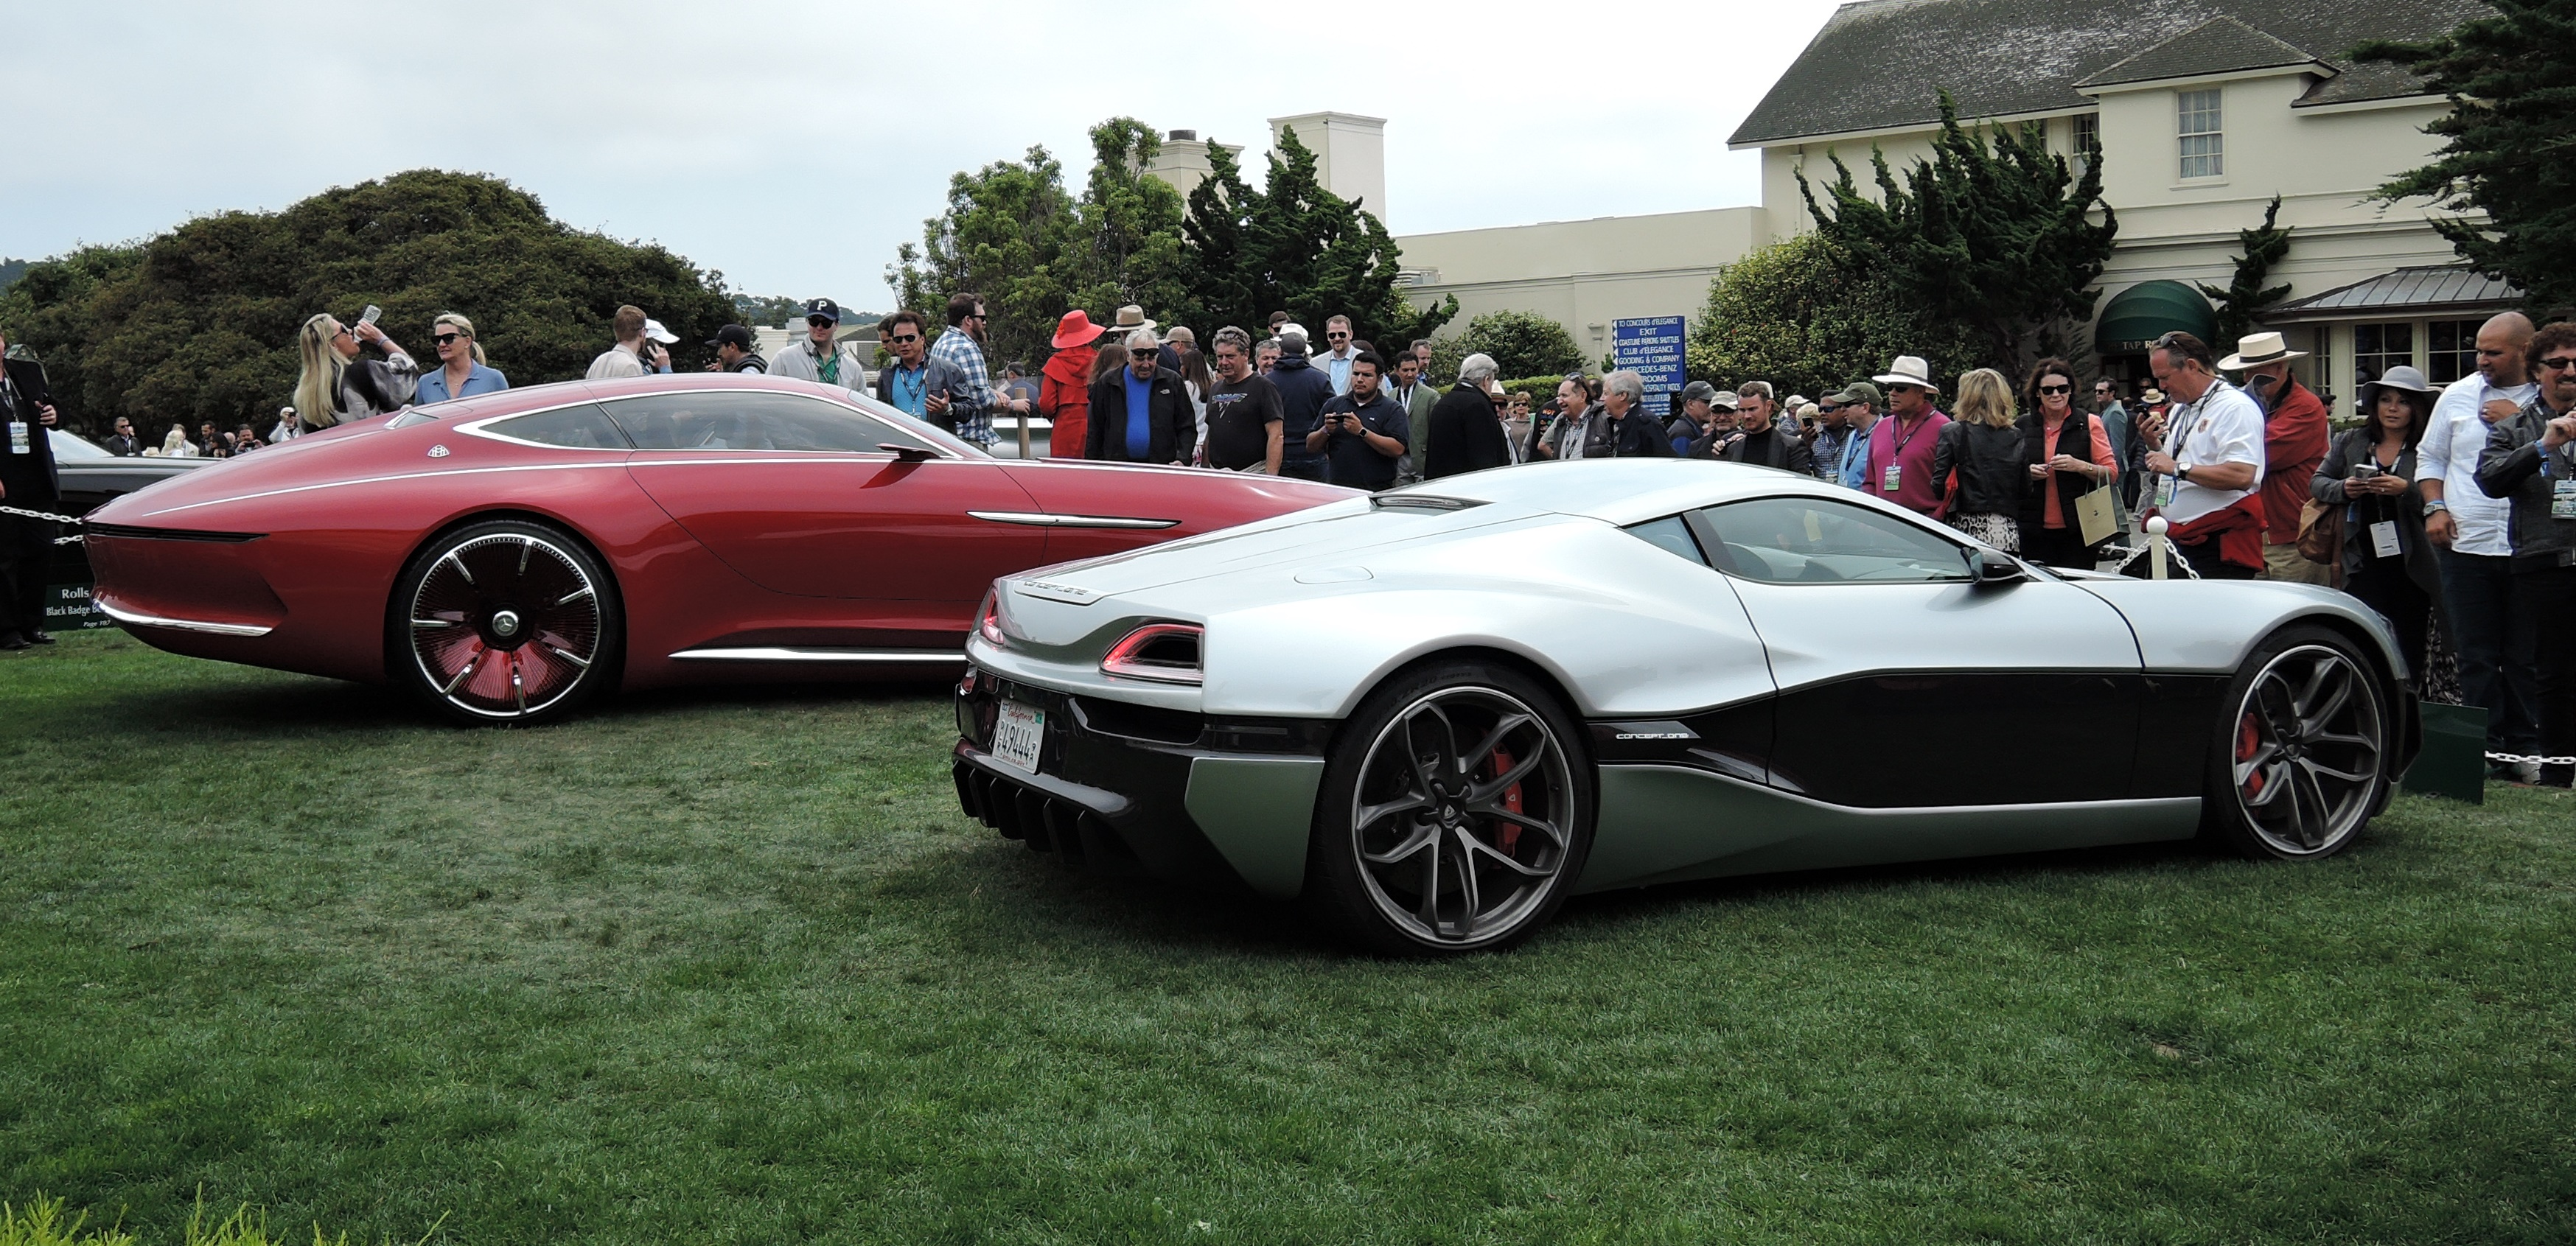 Mercedes and Porsche Concept Cars - Pebble Beach Concours d'Elegance 2016